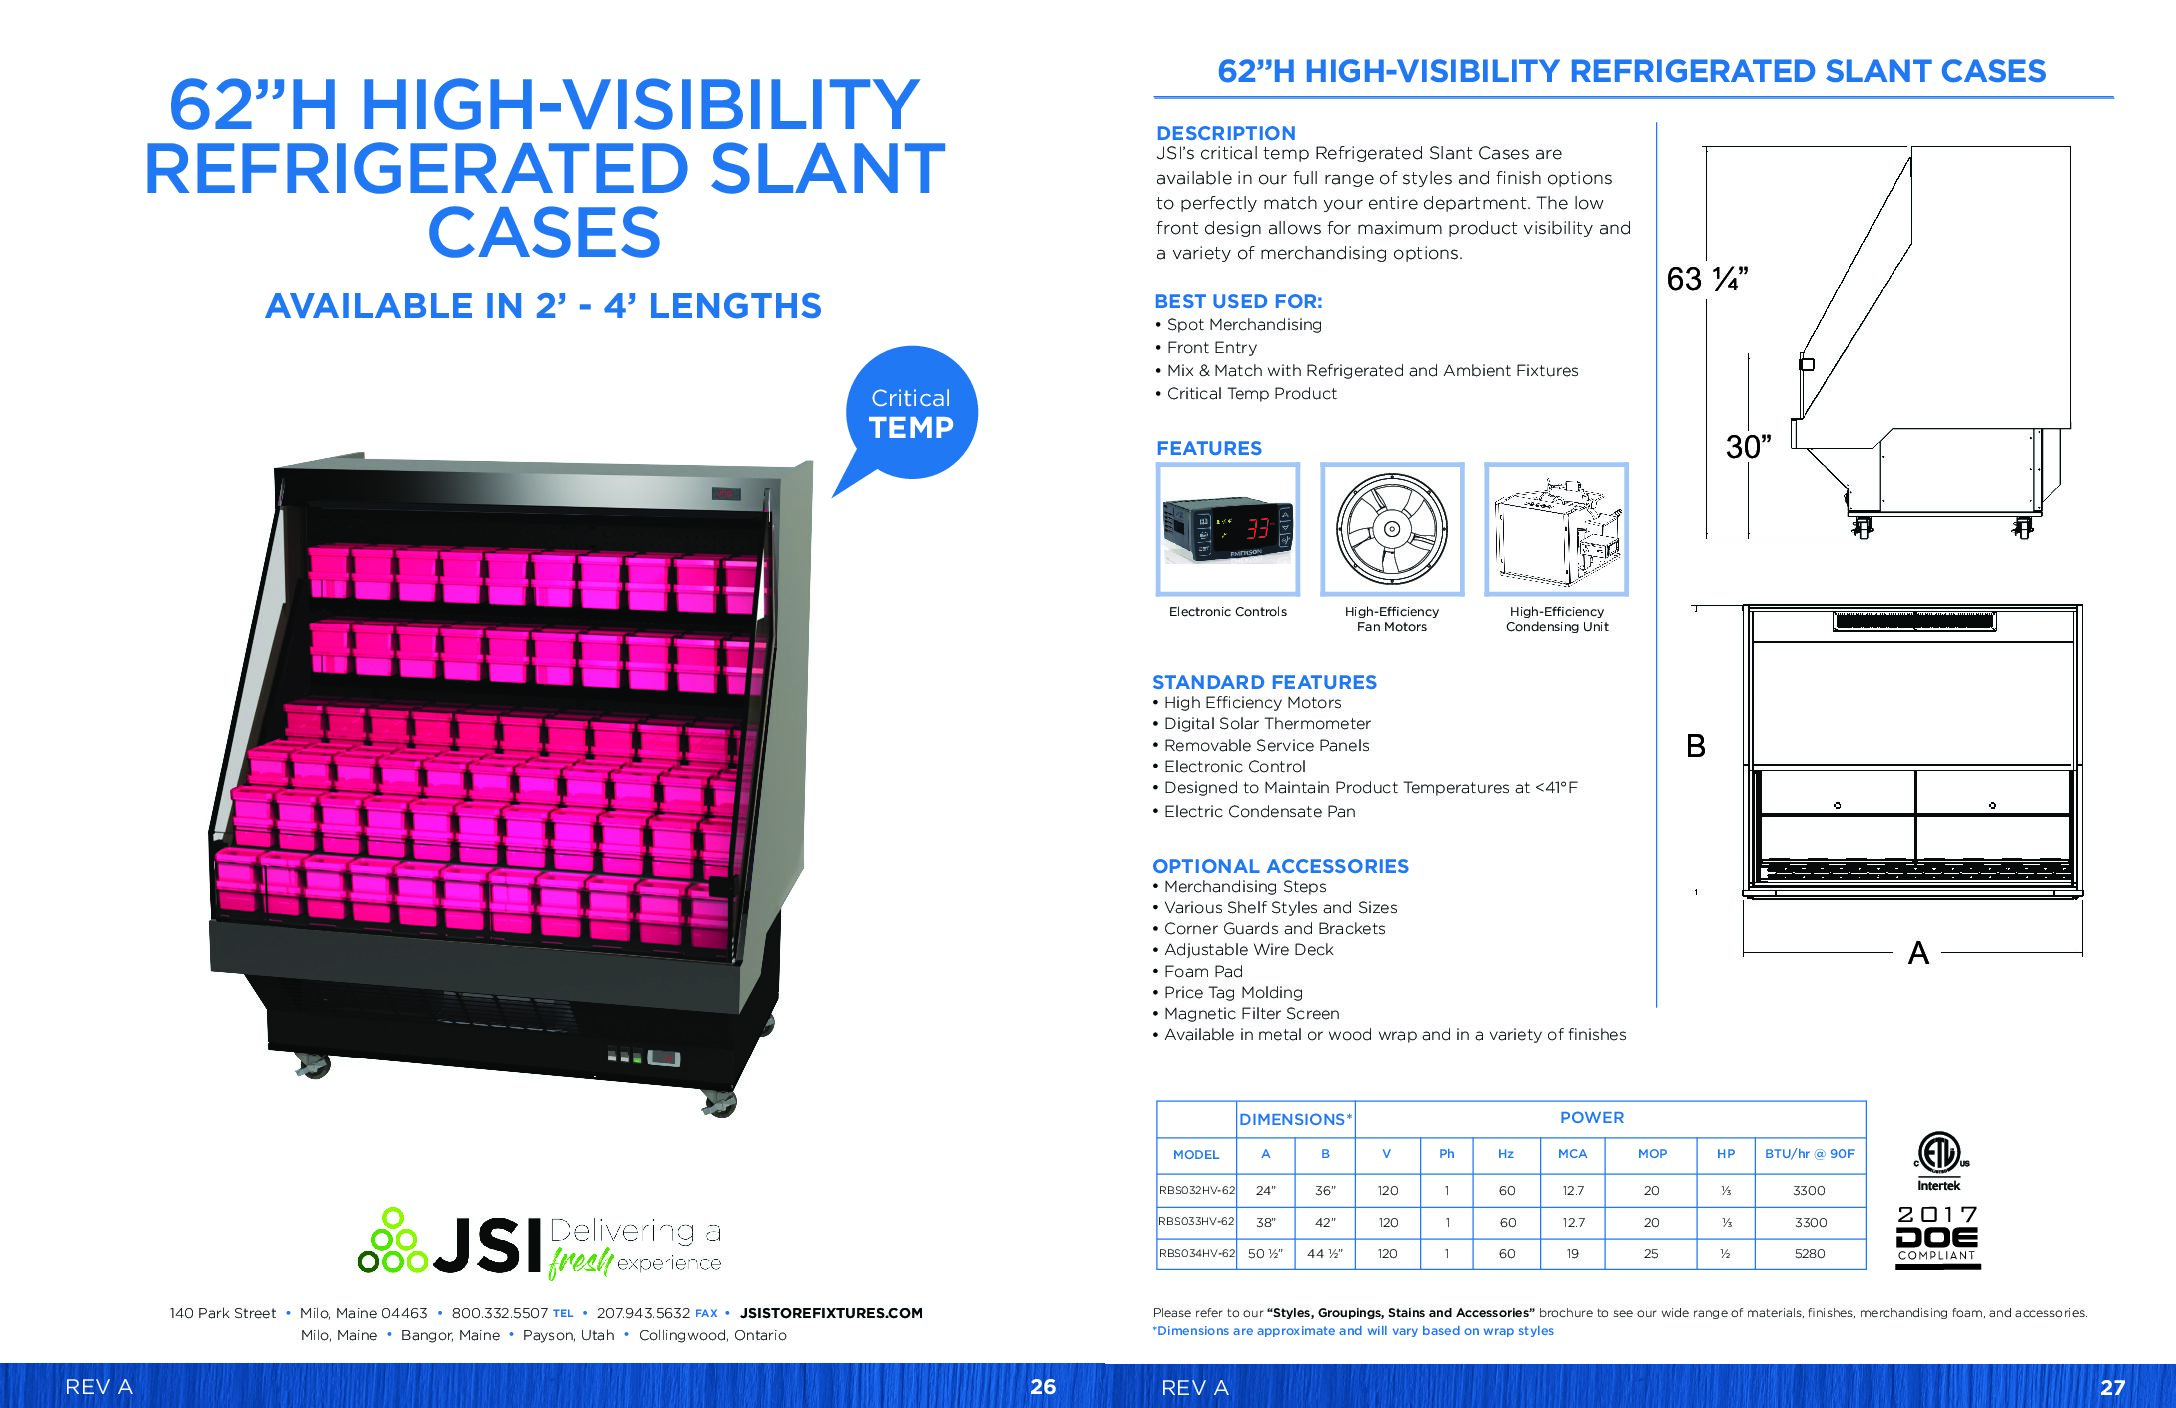 62in High-Visibility Refrigerated Slant Cases 2ft-4ft (PDF)